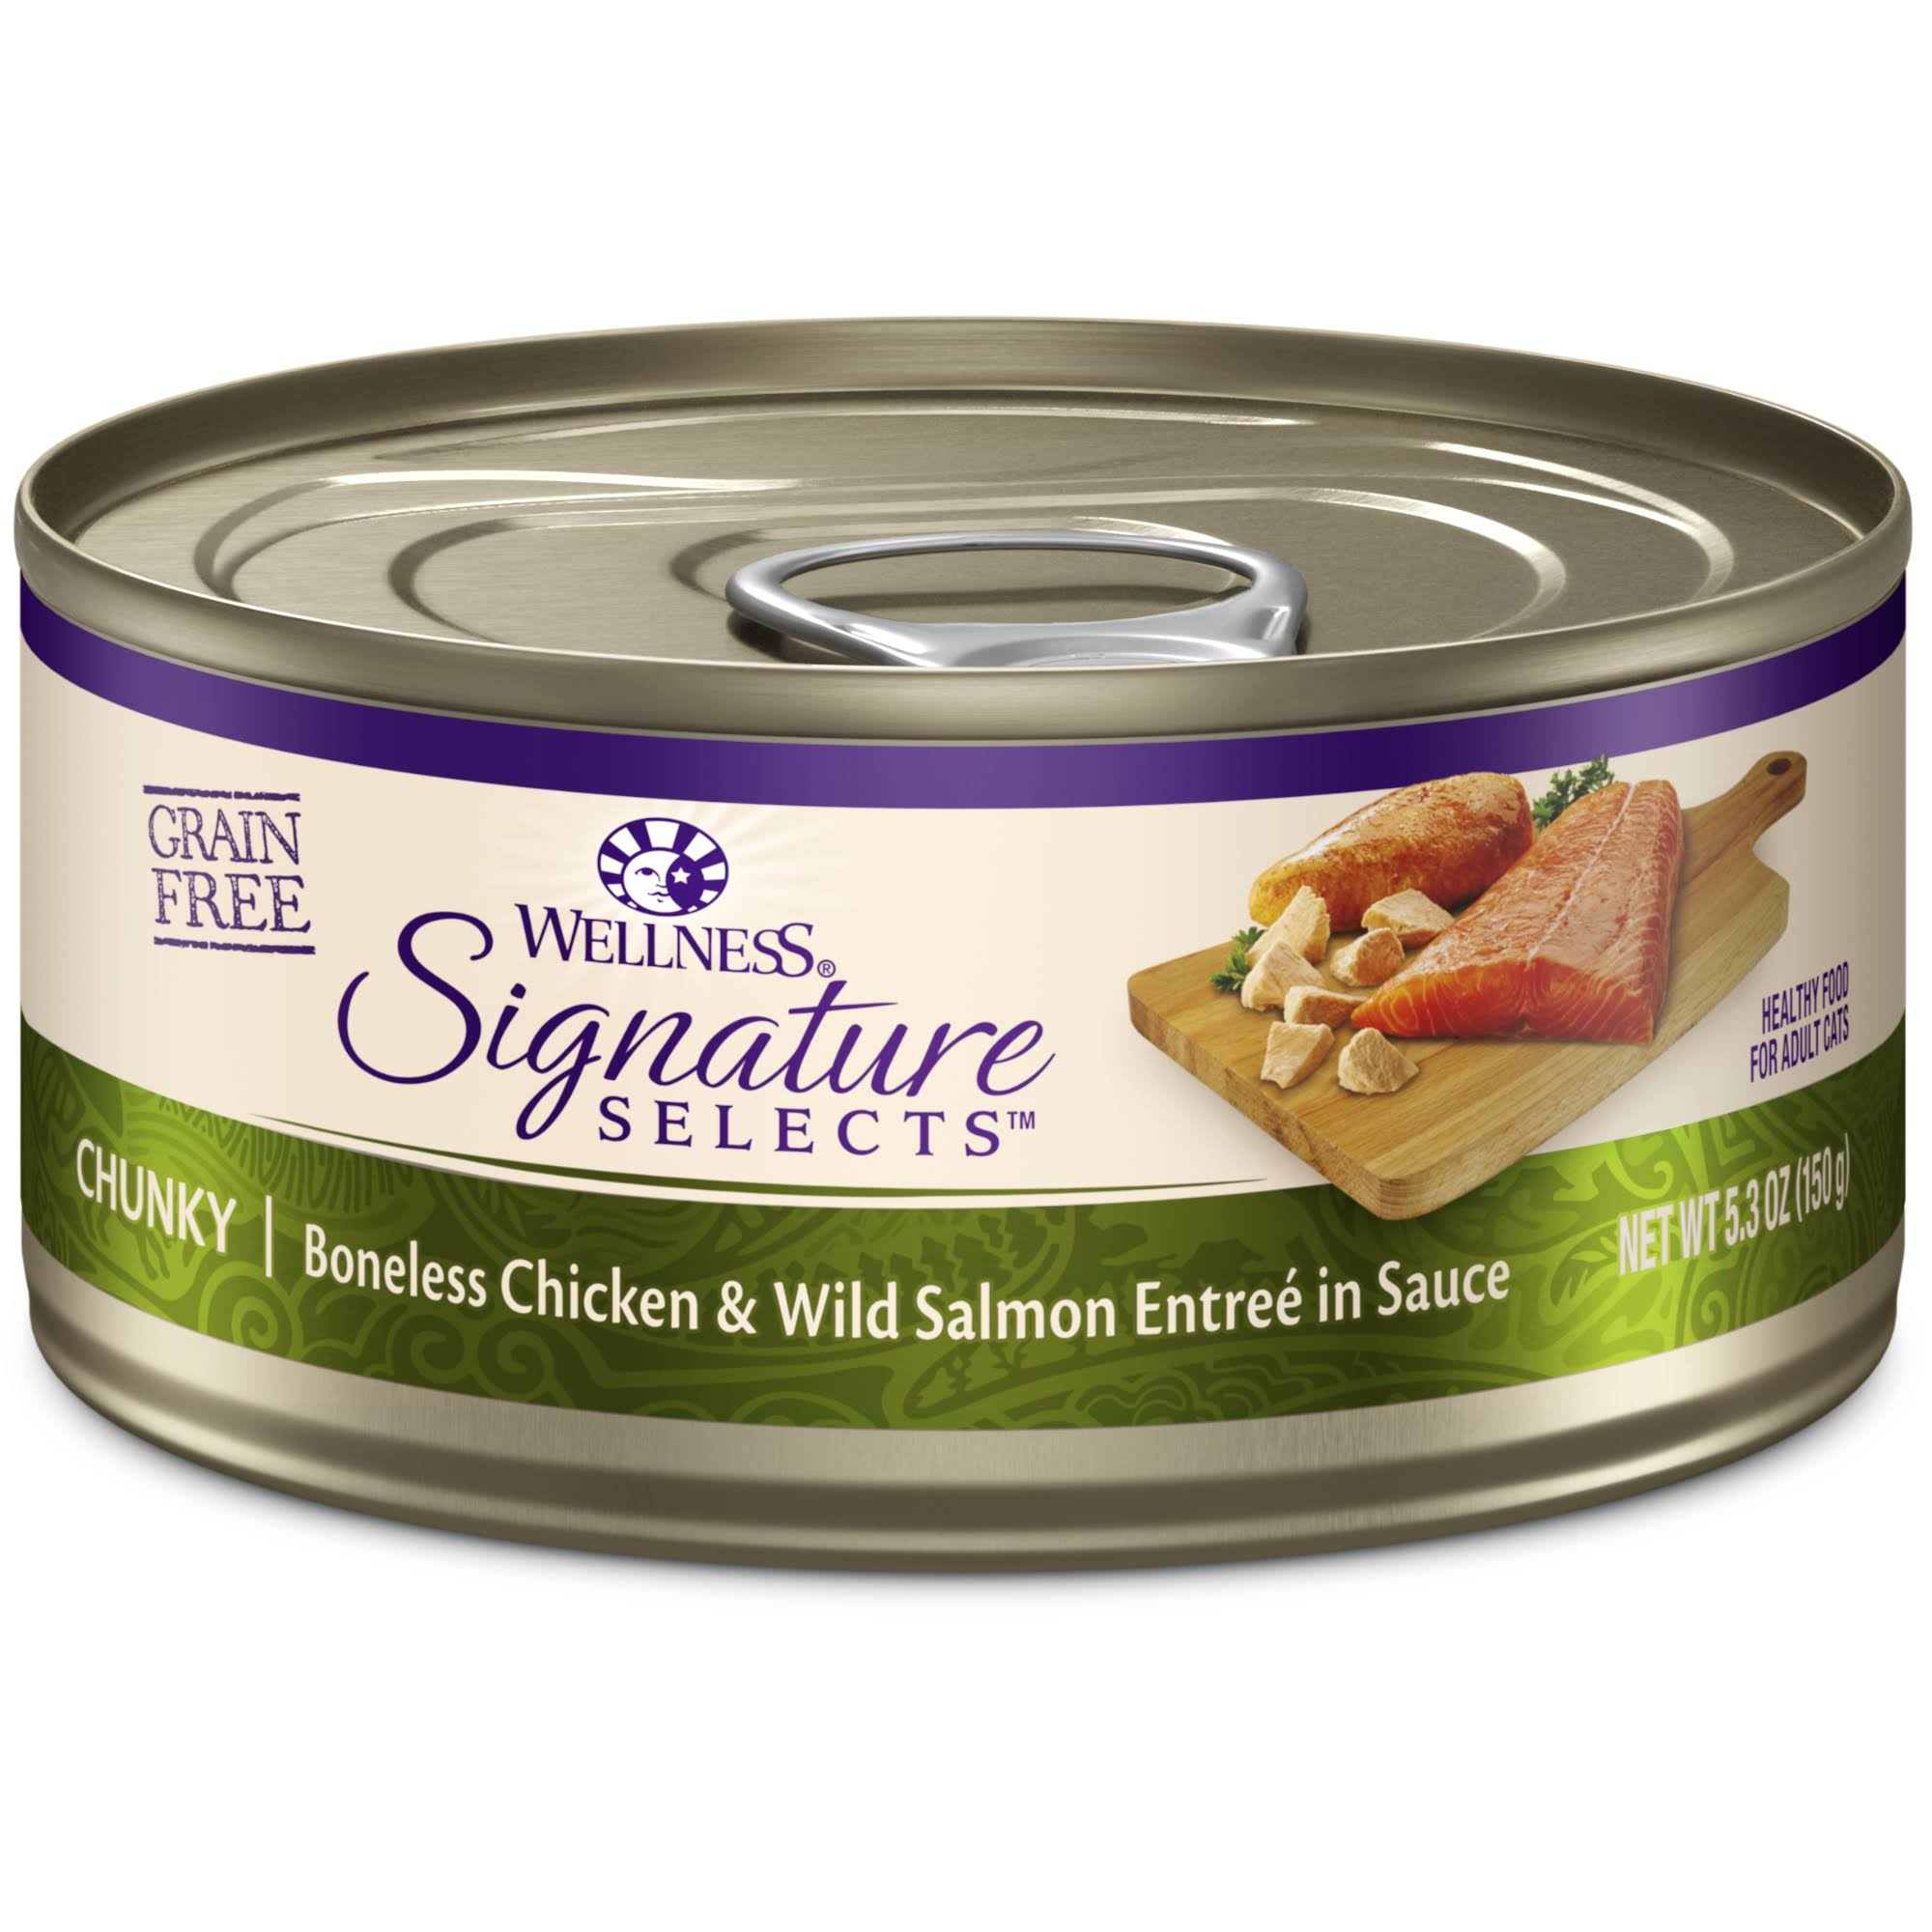 Wellness Signature Selects Canned Wet Cat Food - Chunky Chicken & Wild Salmon, 5.3oz